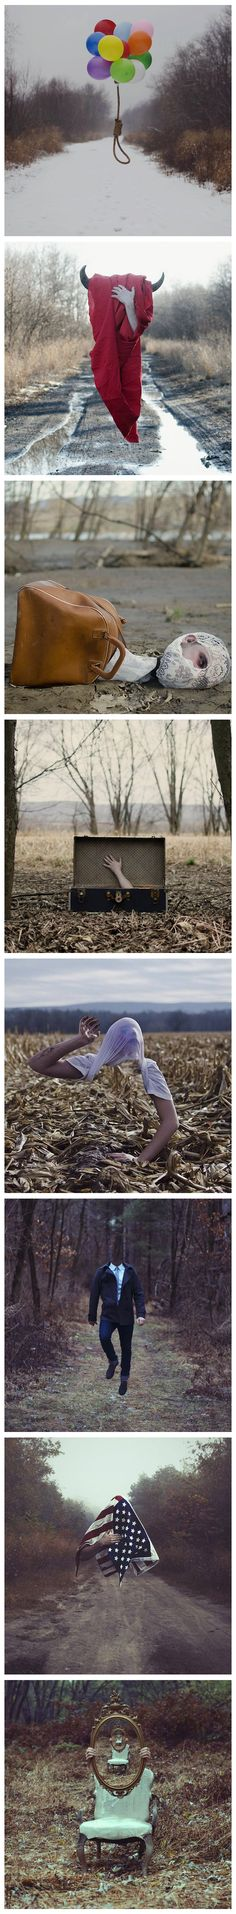 CHRISTOPHER McKENNEY came across him on Facebook and looked even more into his work its creepy but interesting